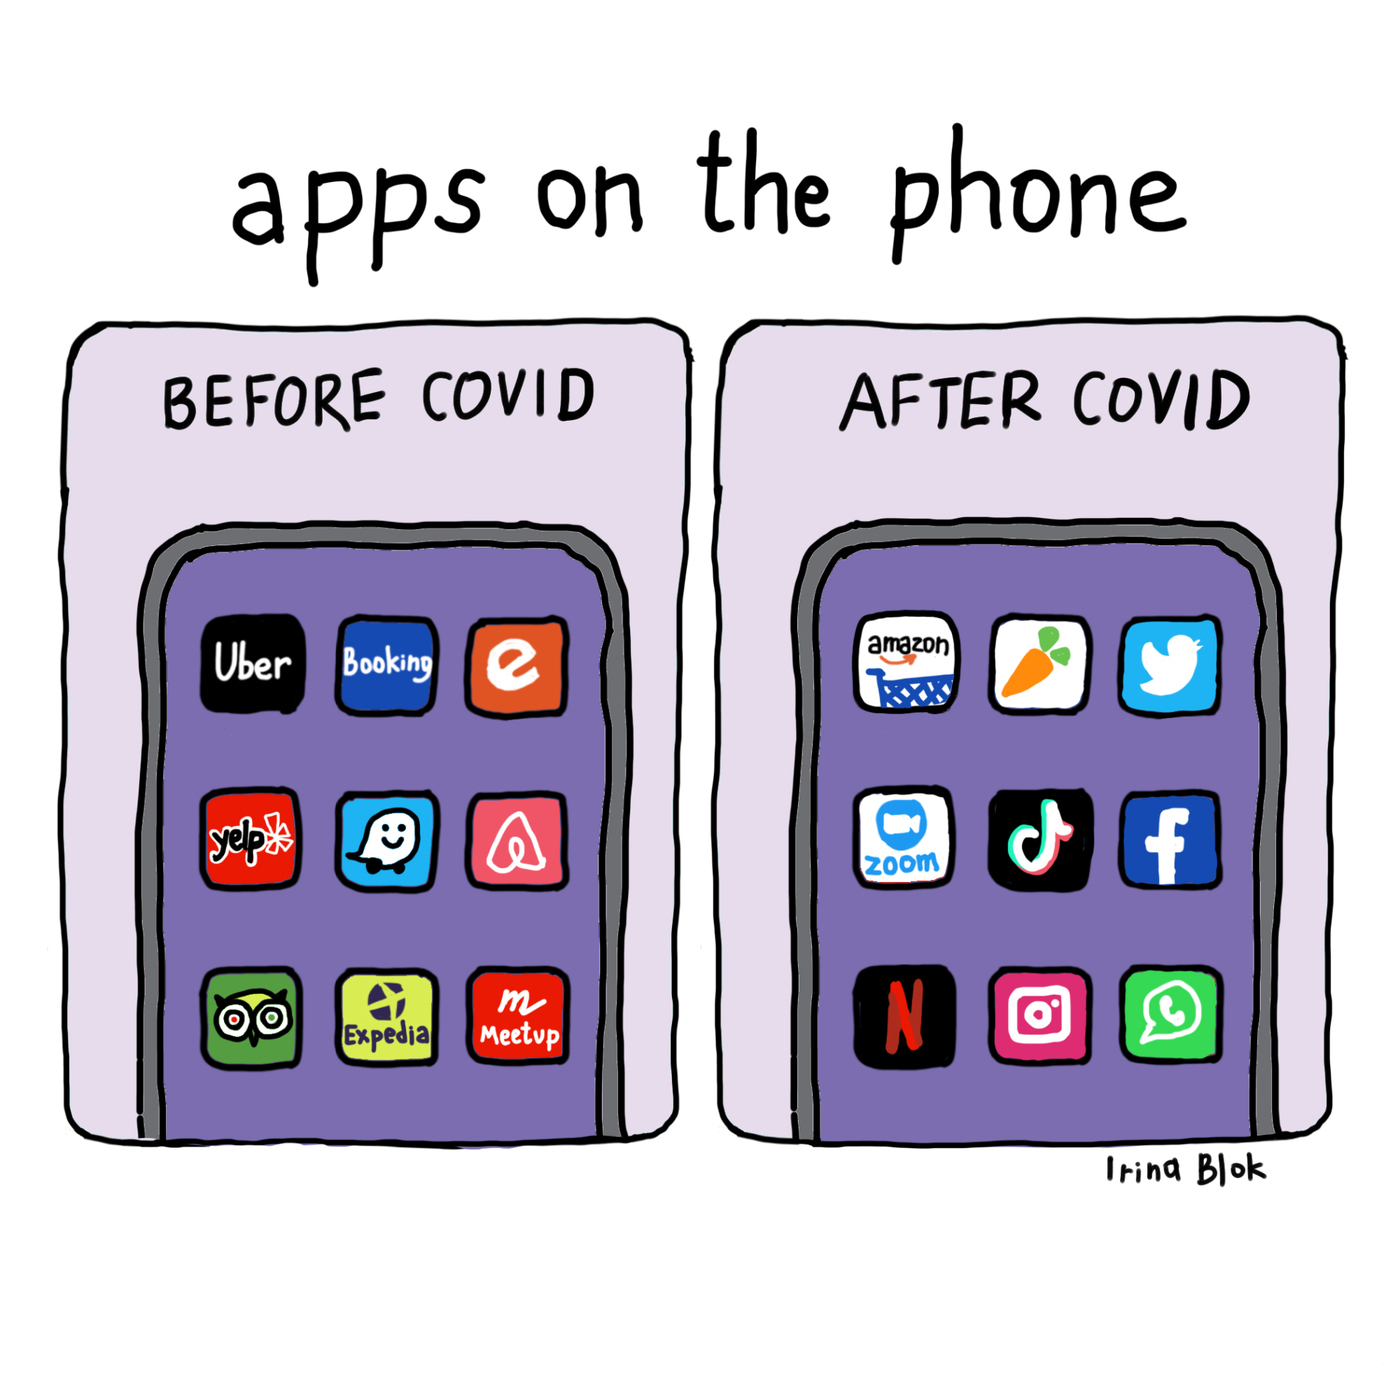 apps on the phone  BEFORE COVID AFTER CoVID  )/* (74 = GE)  m oe ea Meetup